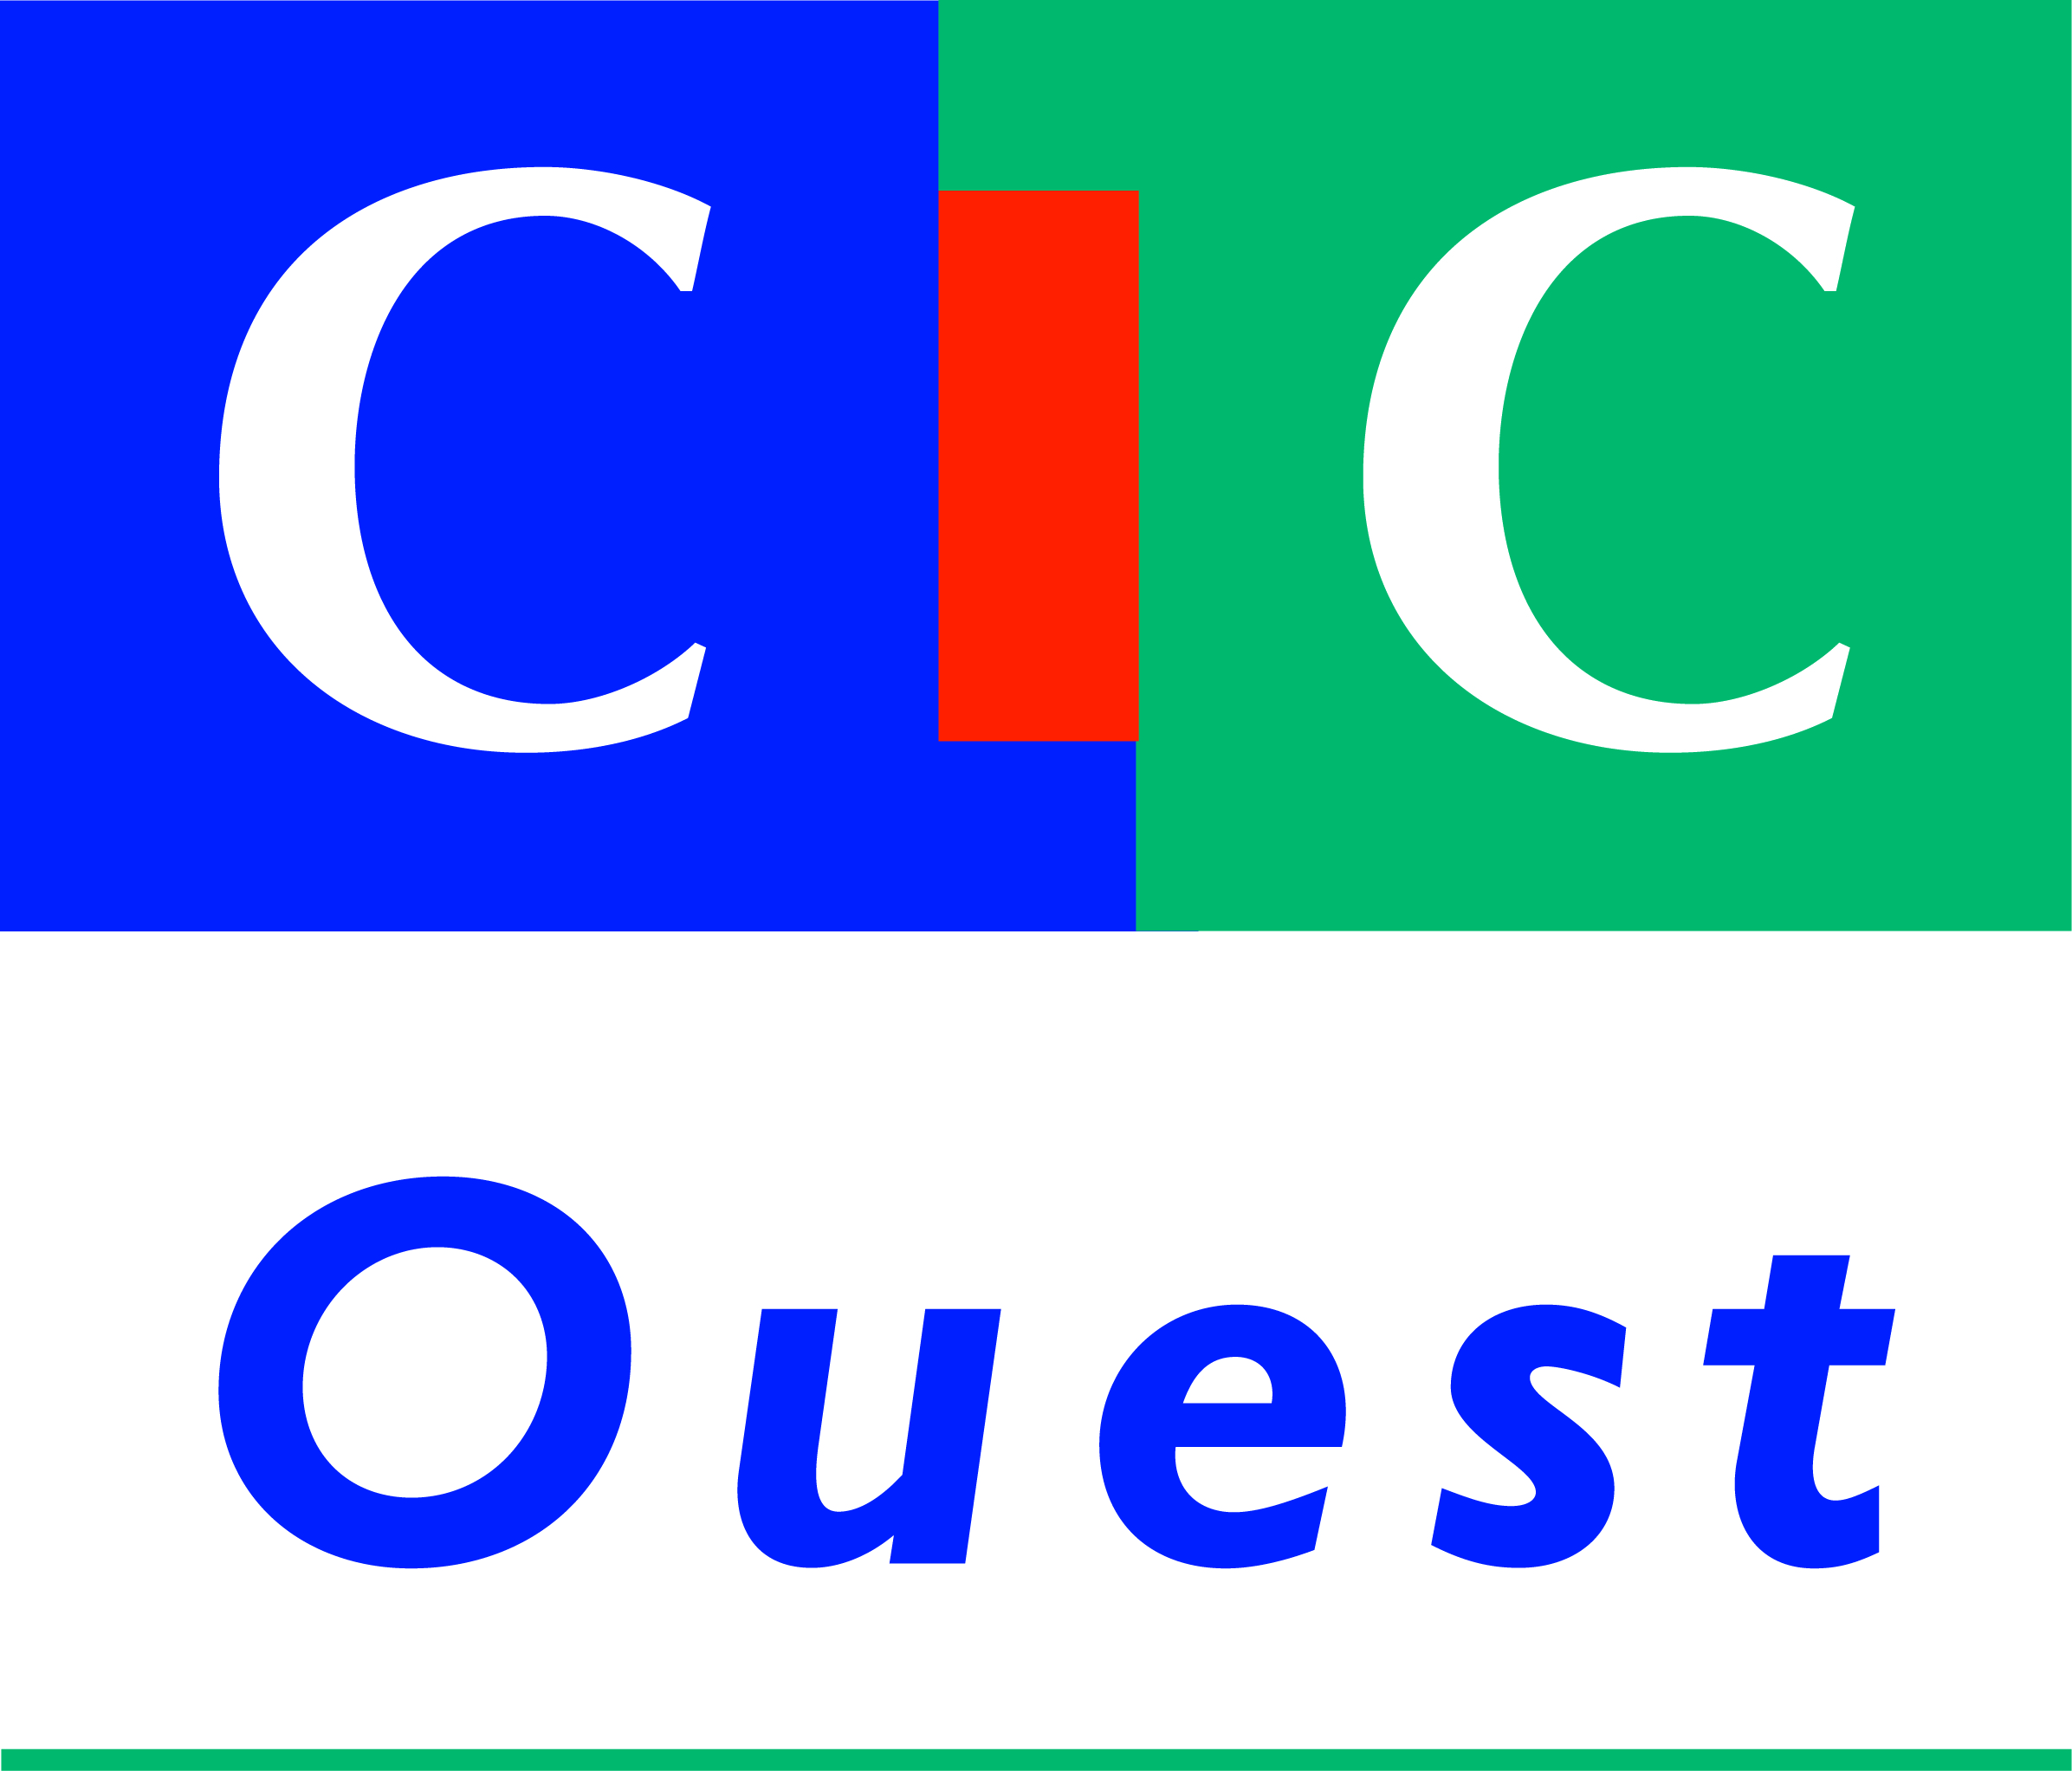 CIC OUEST Vertical Quadri HD